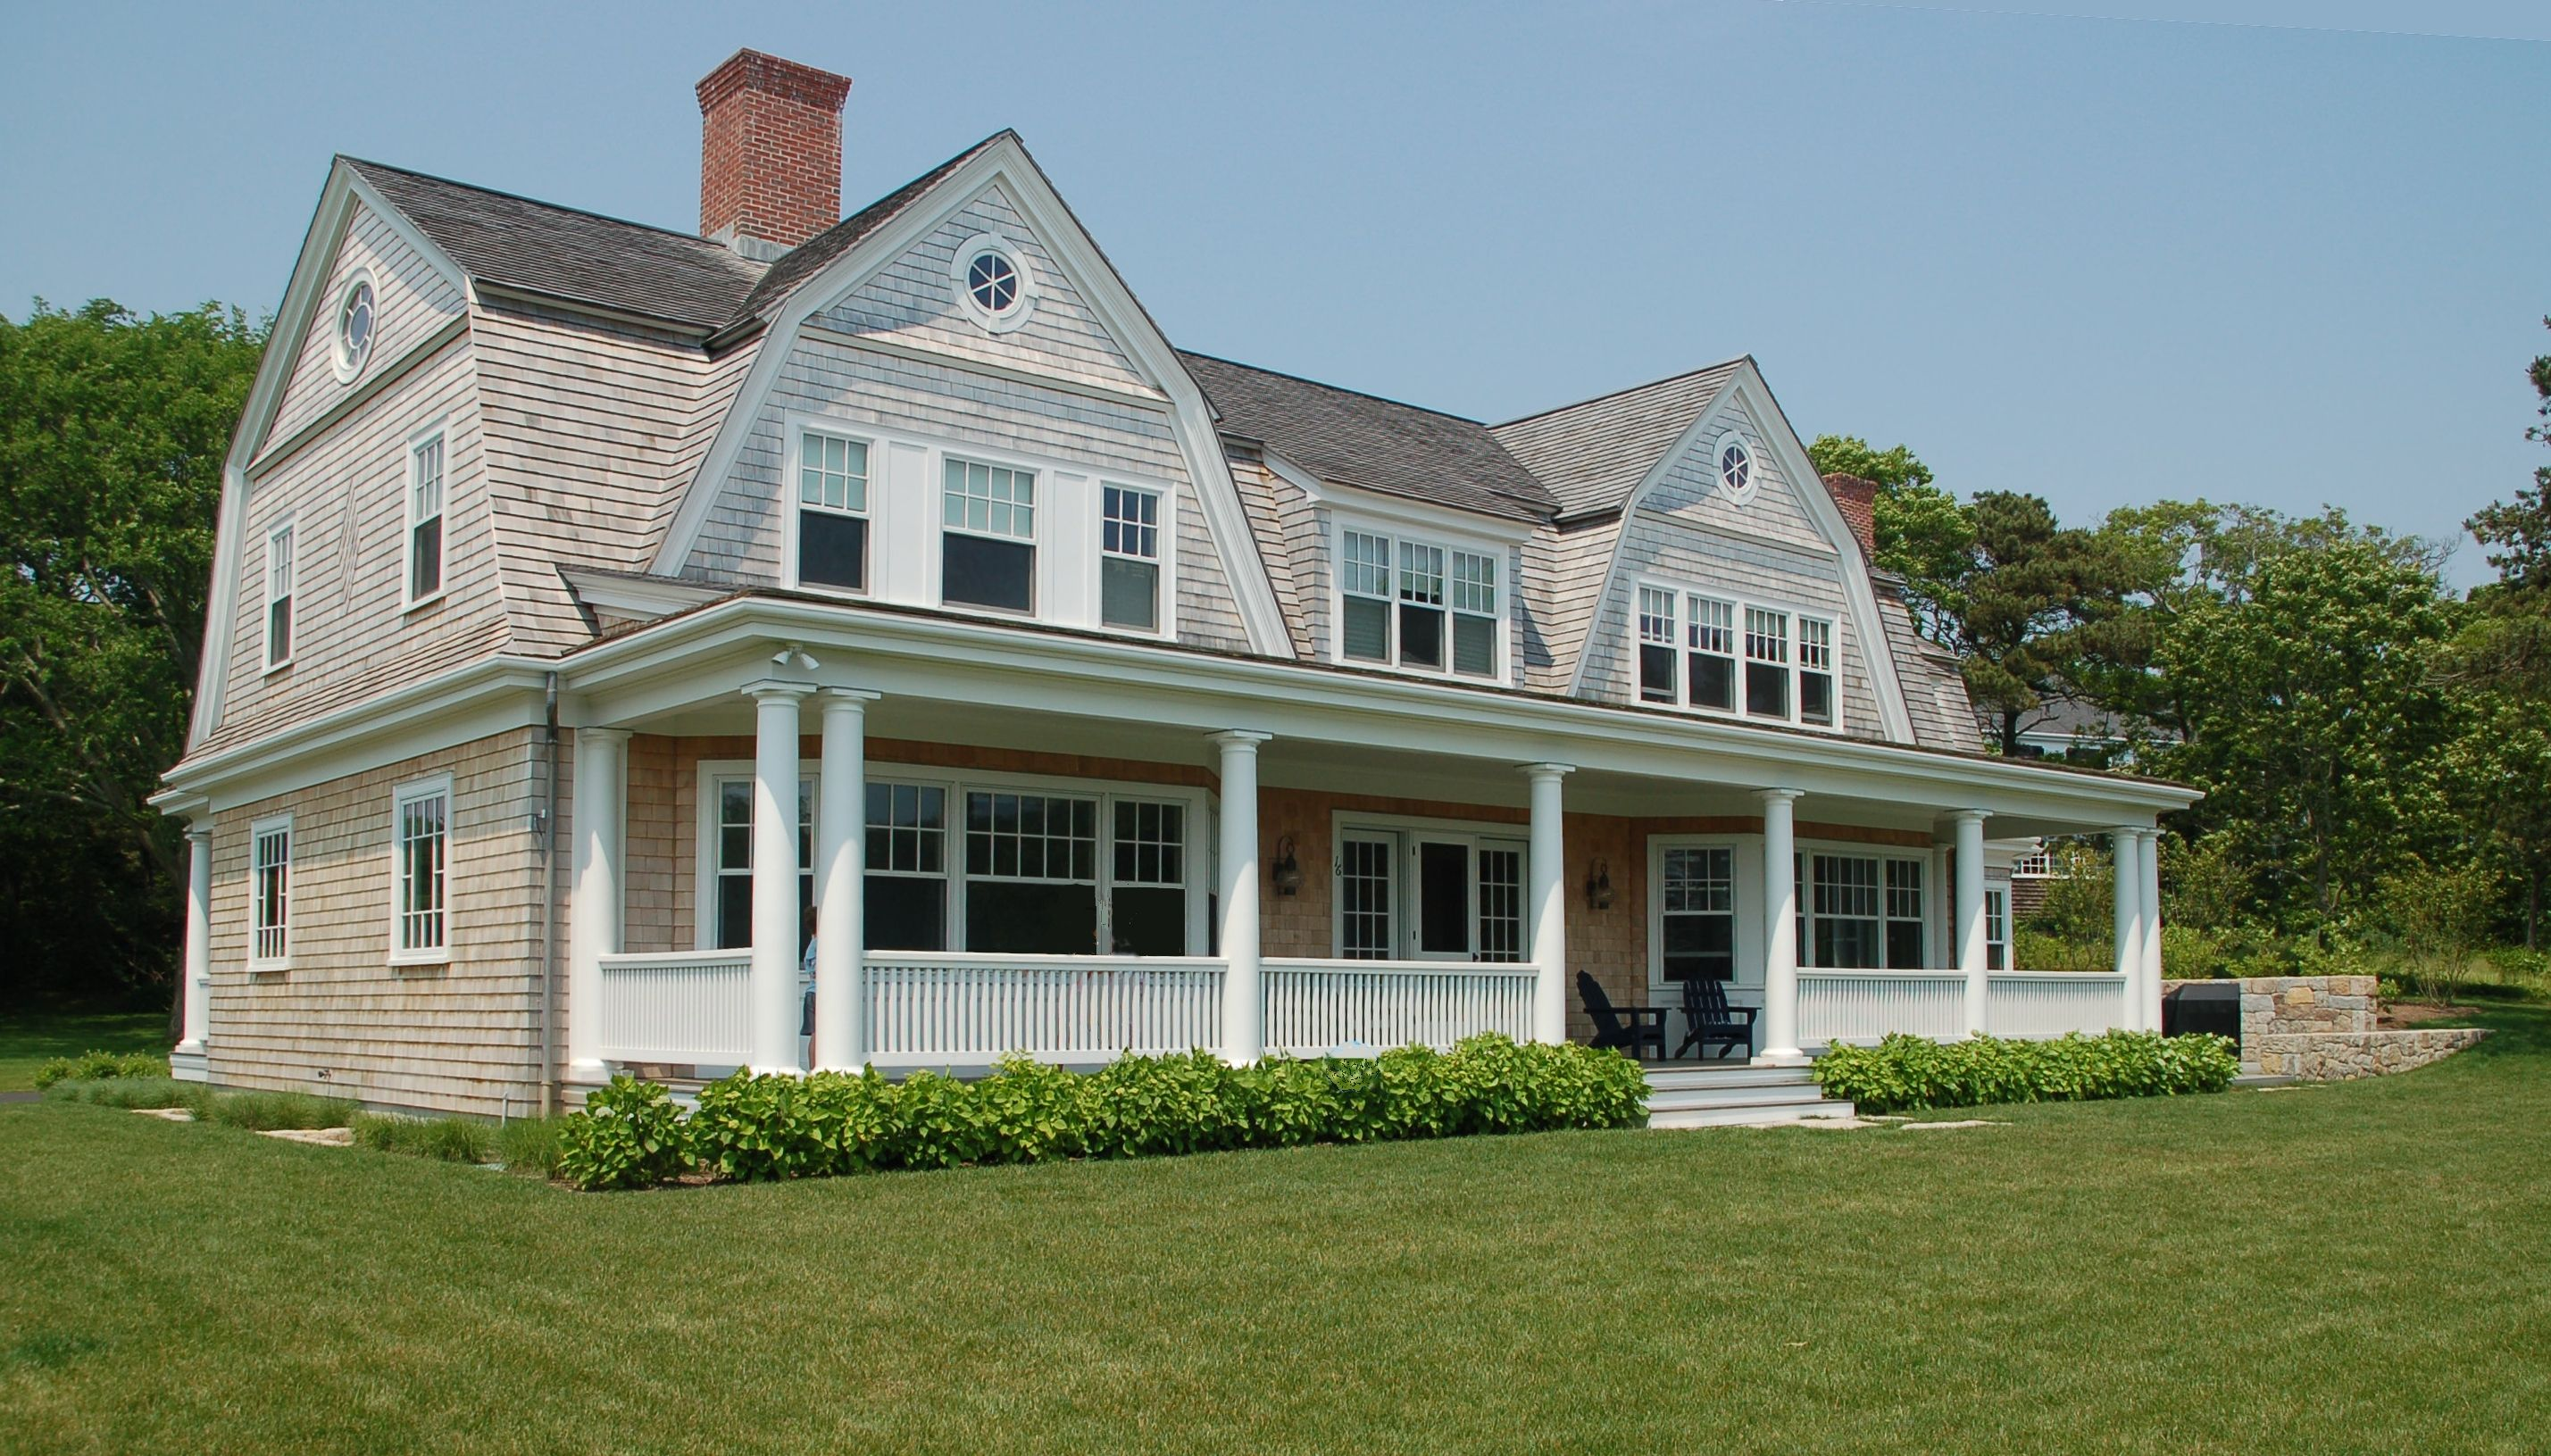 Cape cod home exterior designs front porch ideas for Cape cod house exterior design